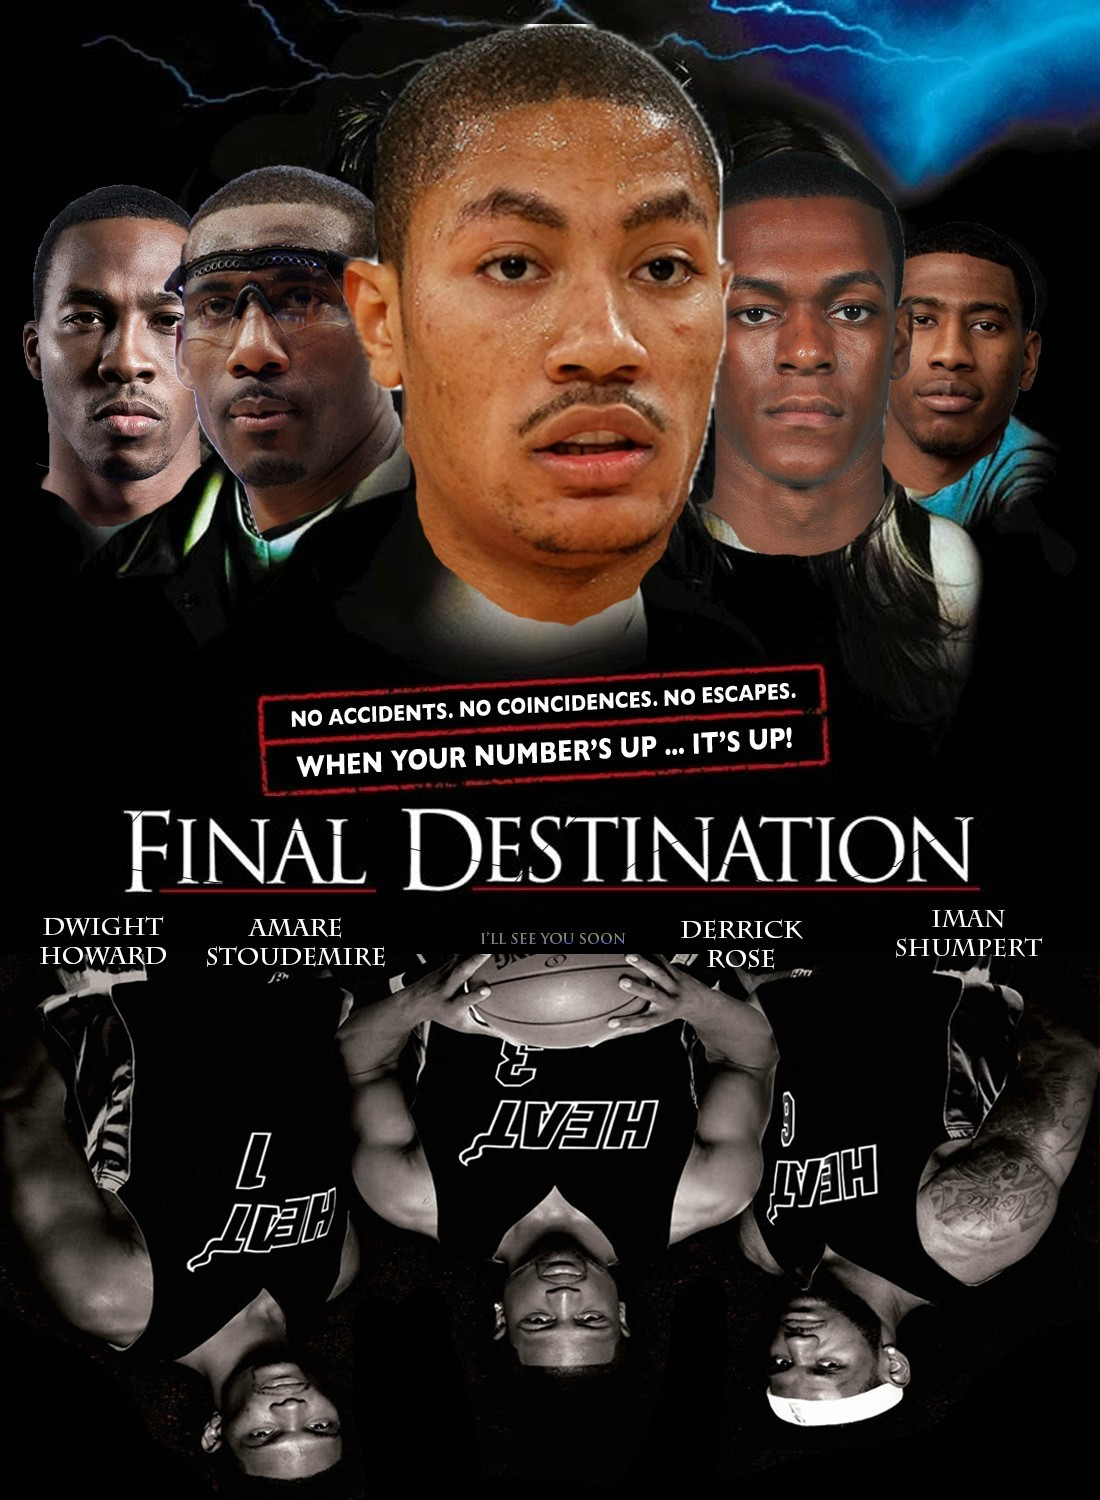 Final Destination: NBA Playoffs Edition. No accidents. No coincidences. No escapes. When your number's up… it's UP! (via caprisunvillain)